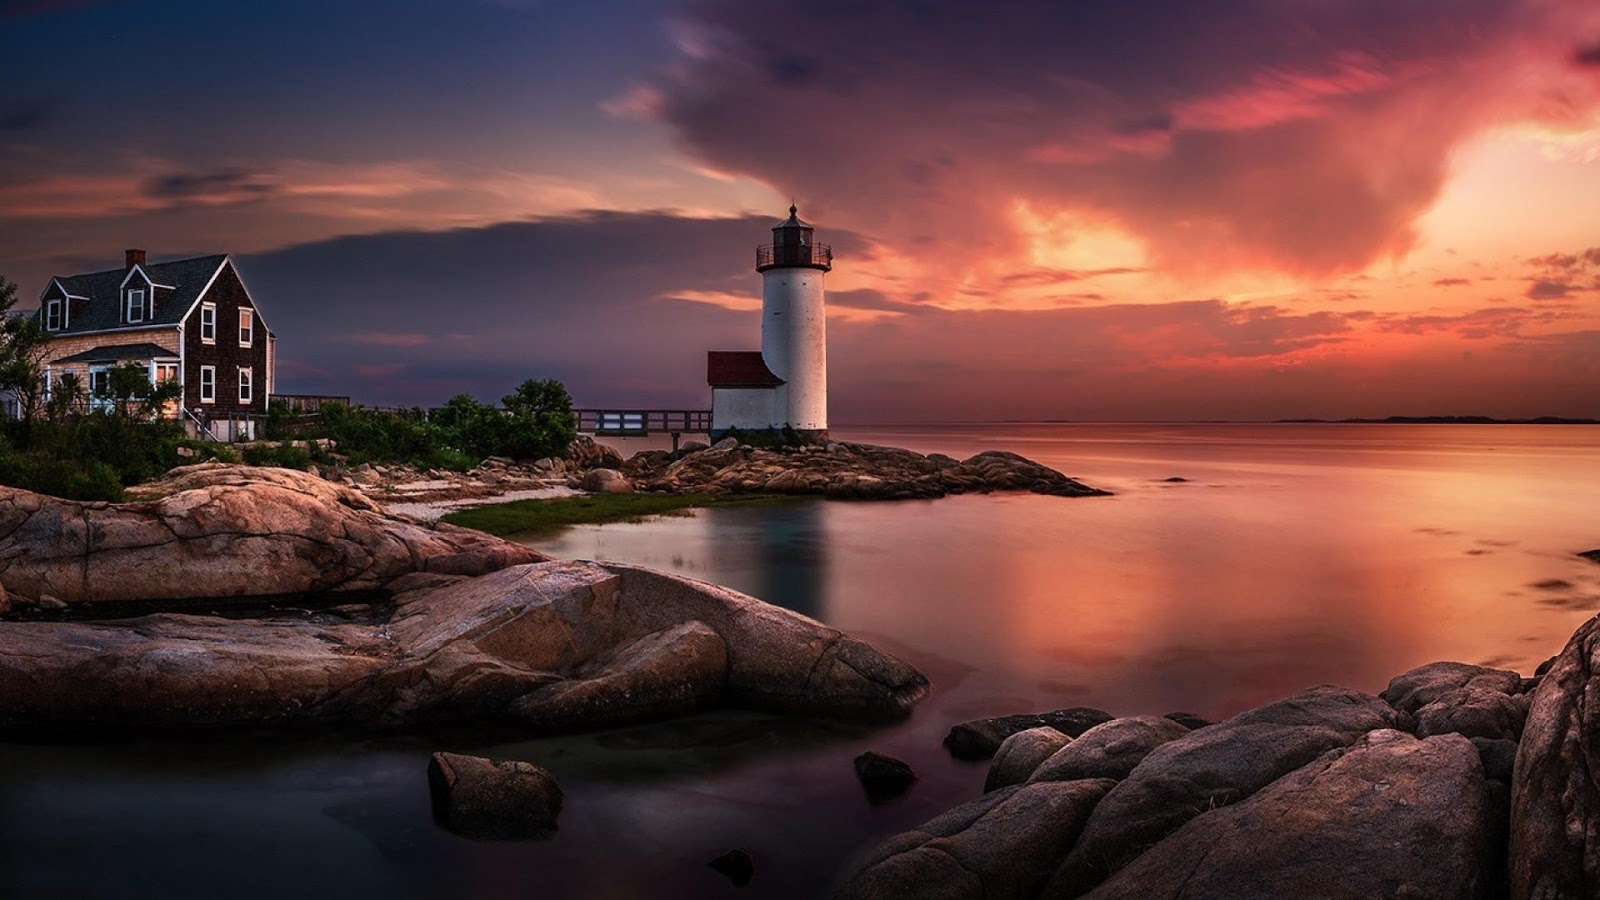 lighthouse storm hd wallpaper   android apps on google play